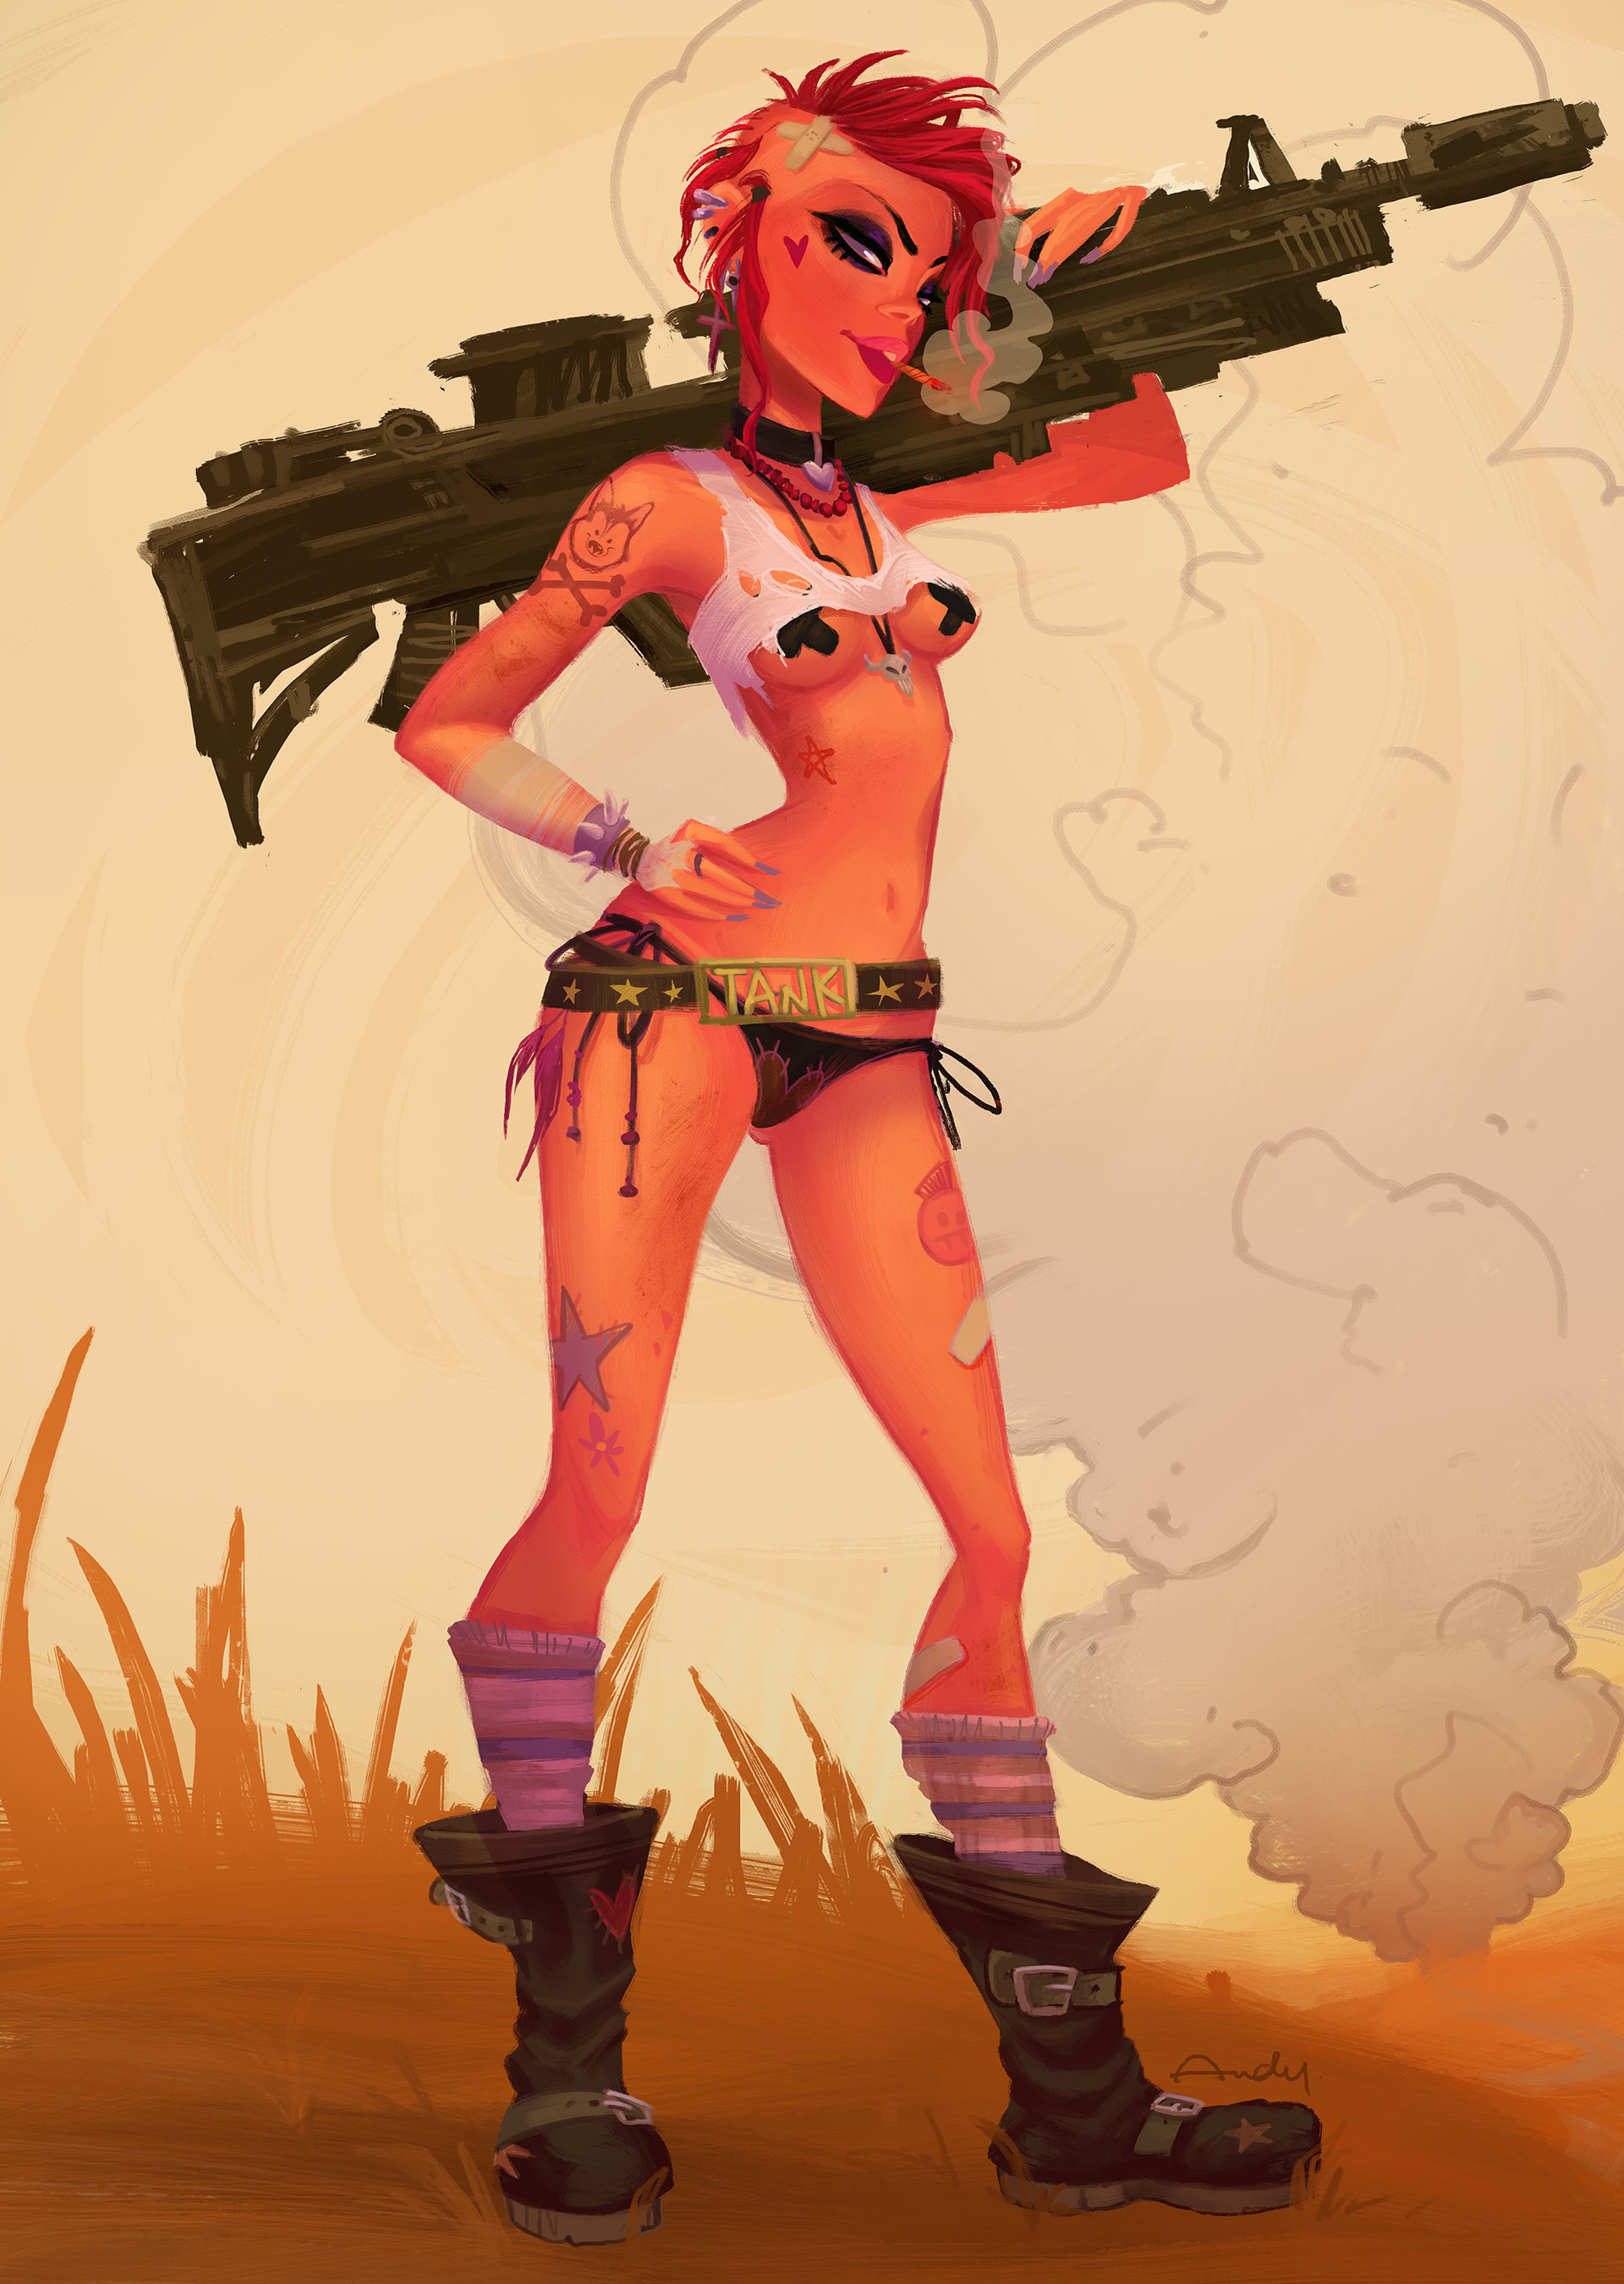 Tank Girl Backgrounds, Compatible - PC, Mobile, Gadgets| 1920x2700 px